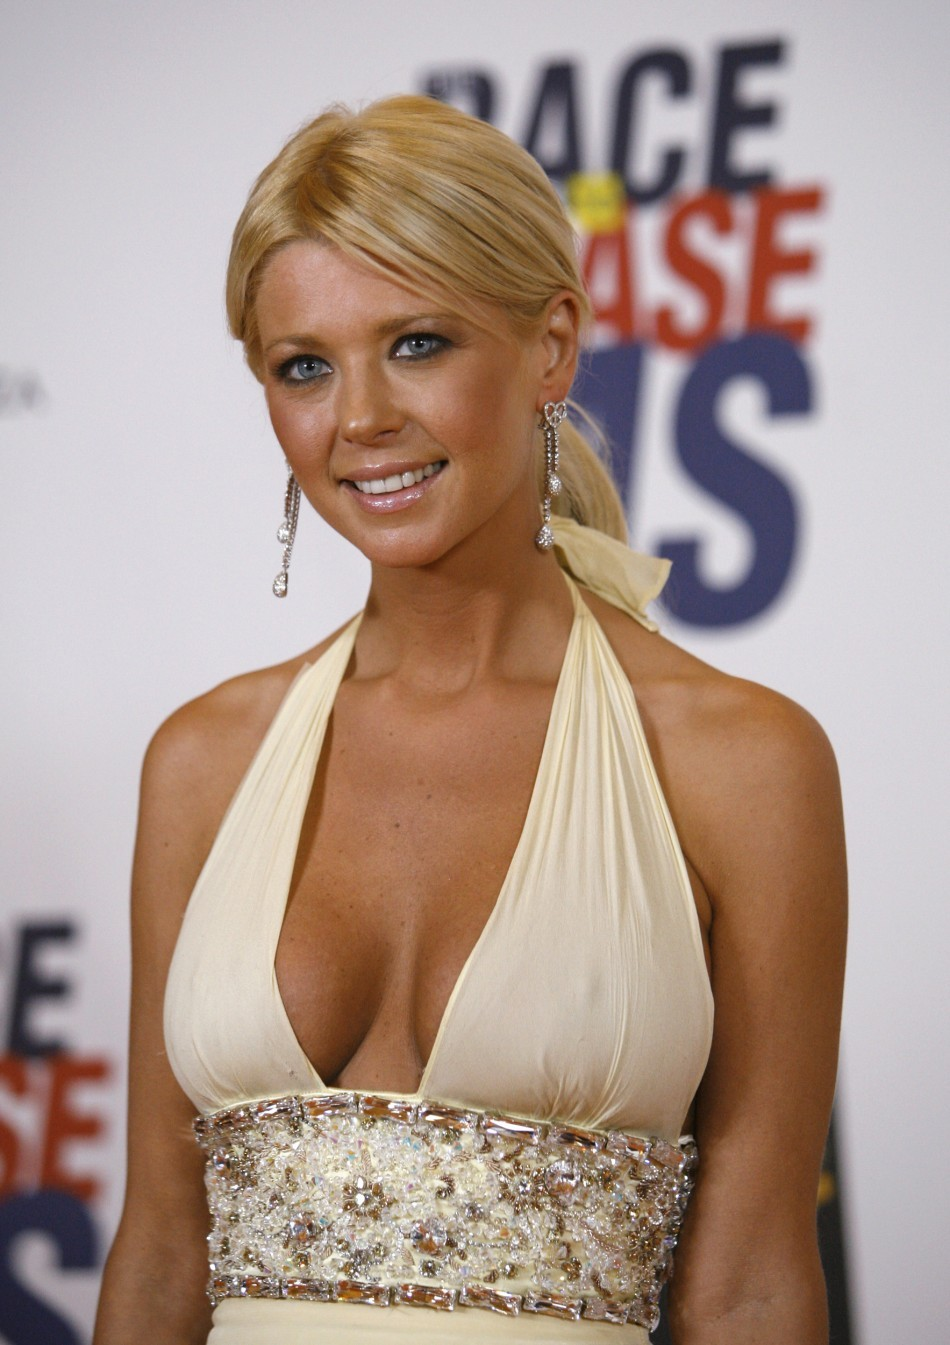 Tara Reid: Exposed